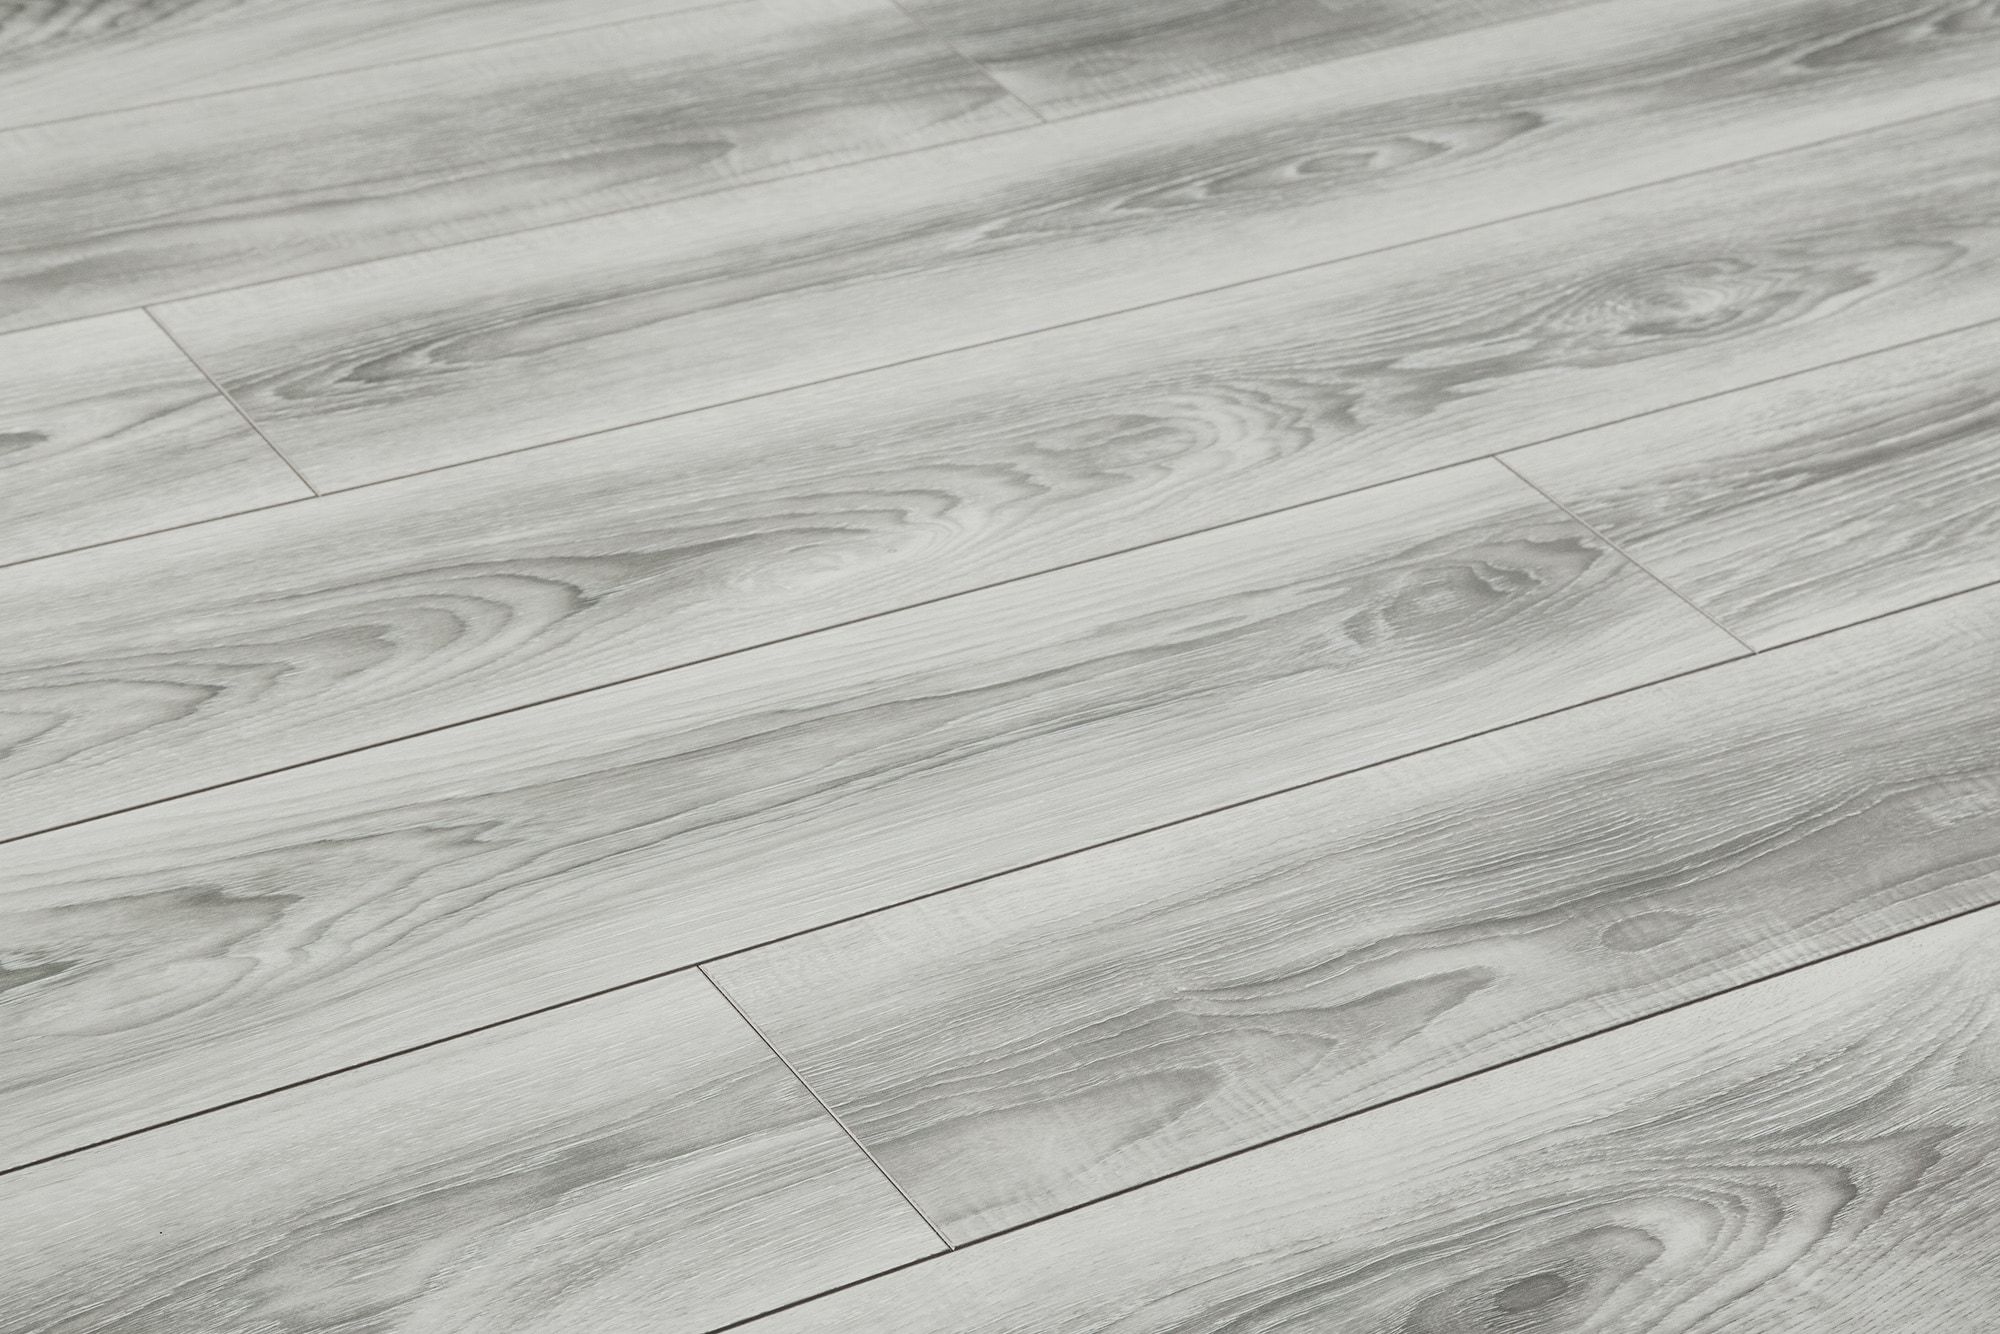 Wood Or Laminate Flooring laminate flooring | builddirect®